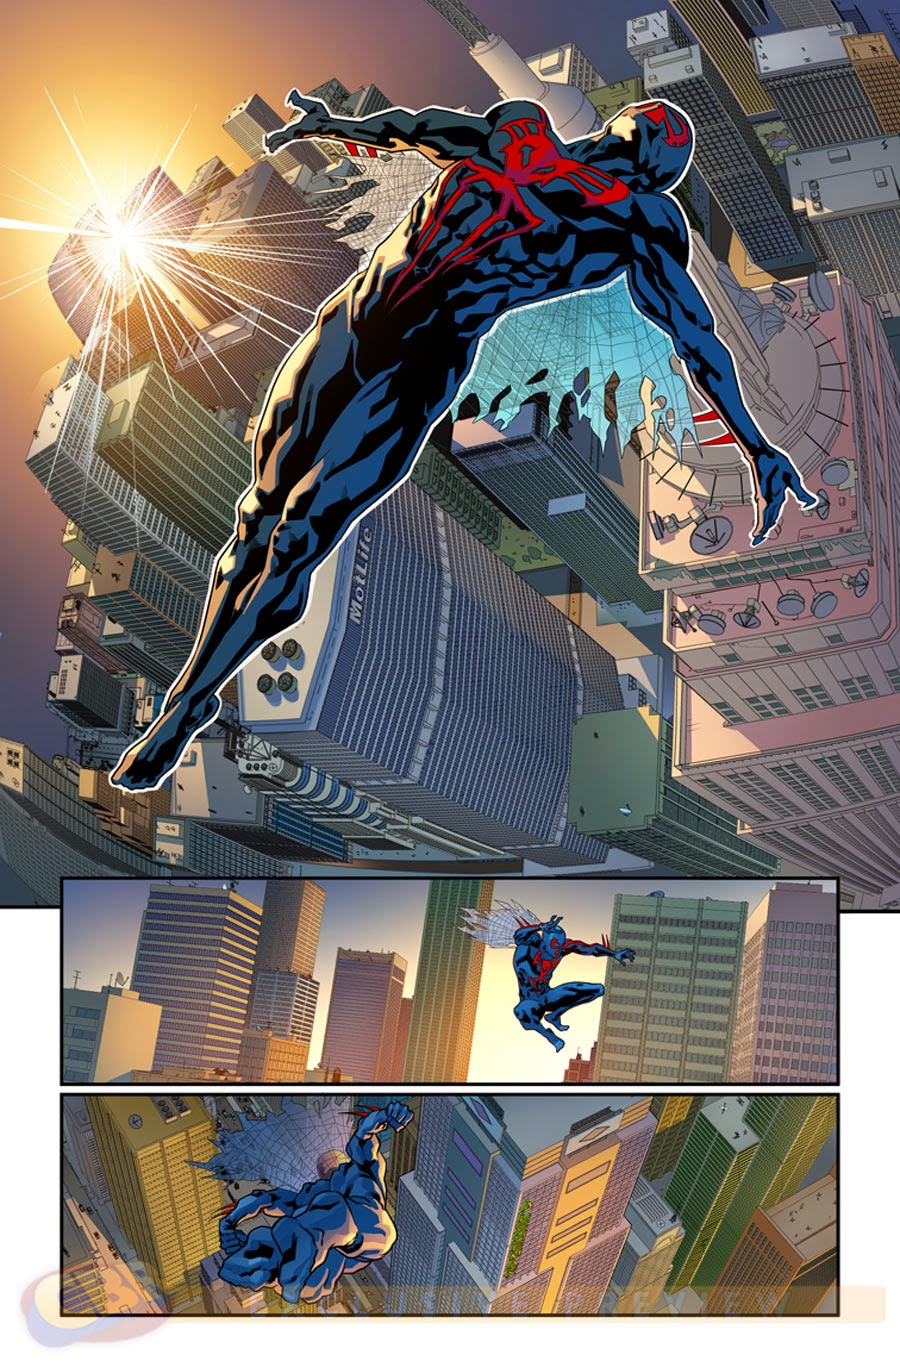 art of spiderman 2099#1